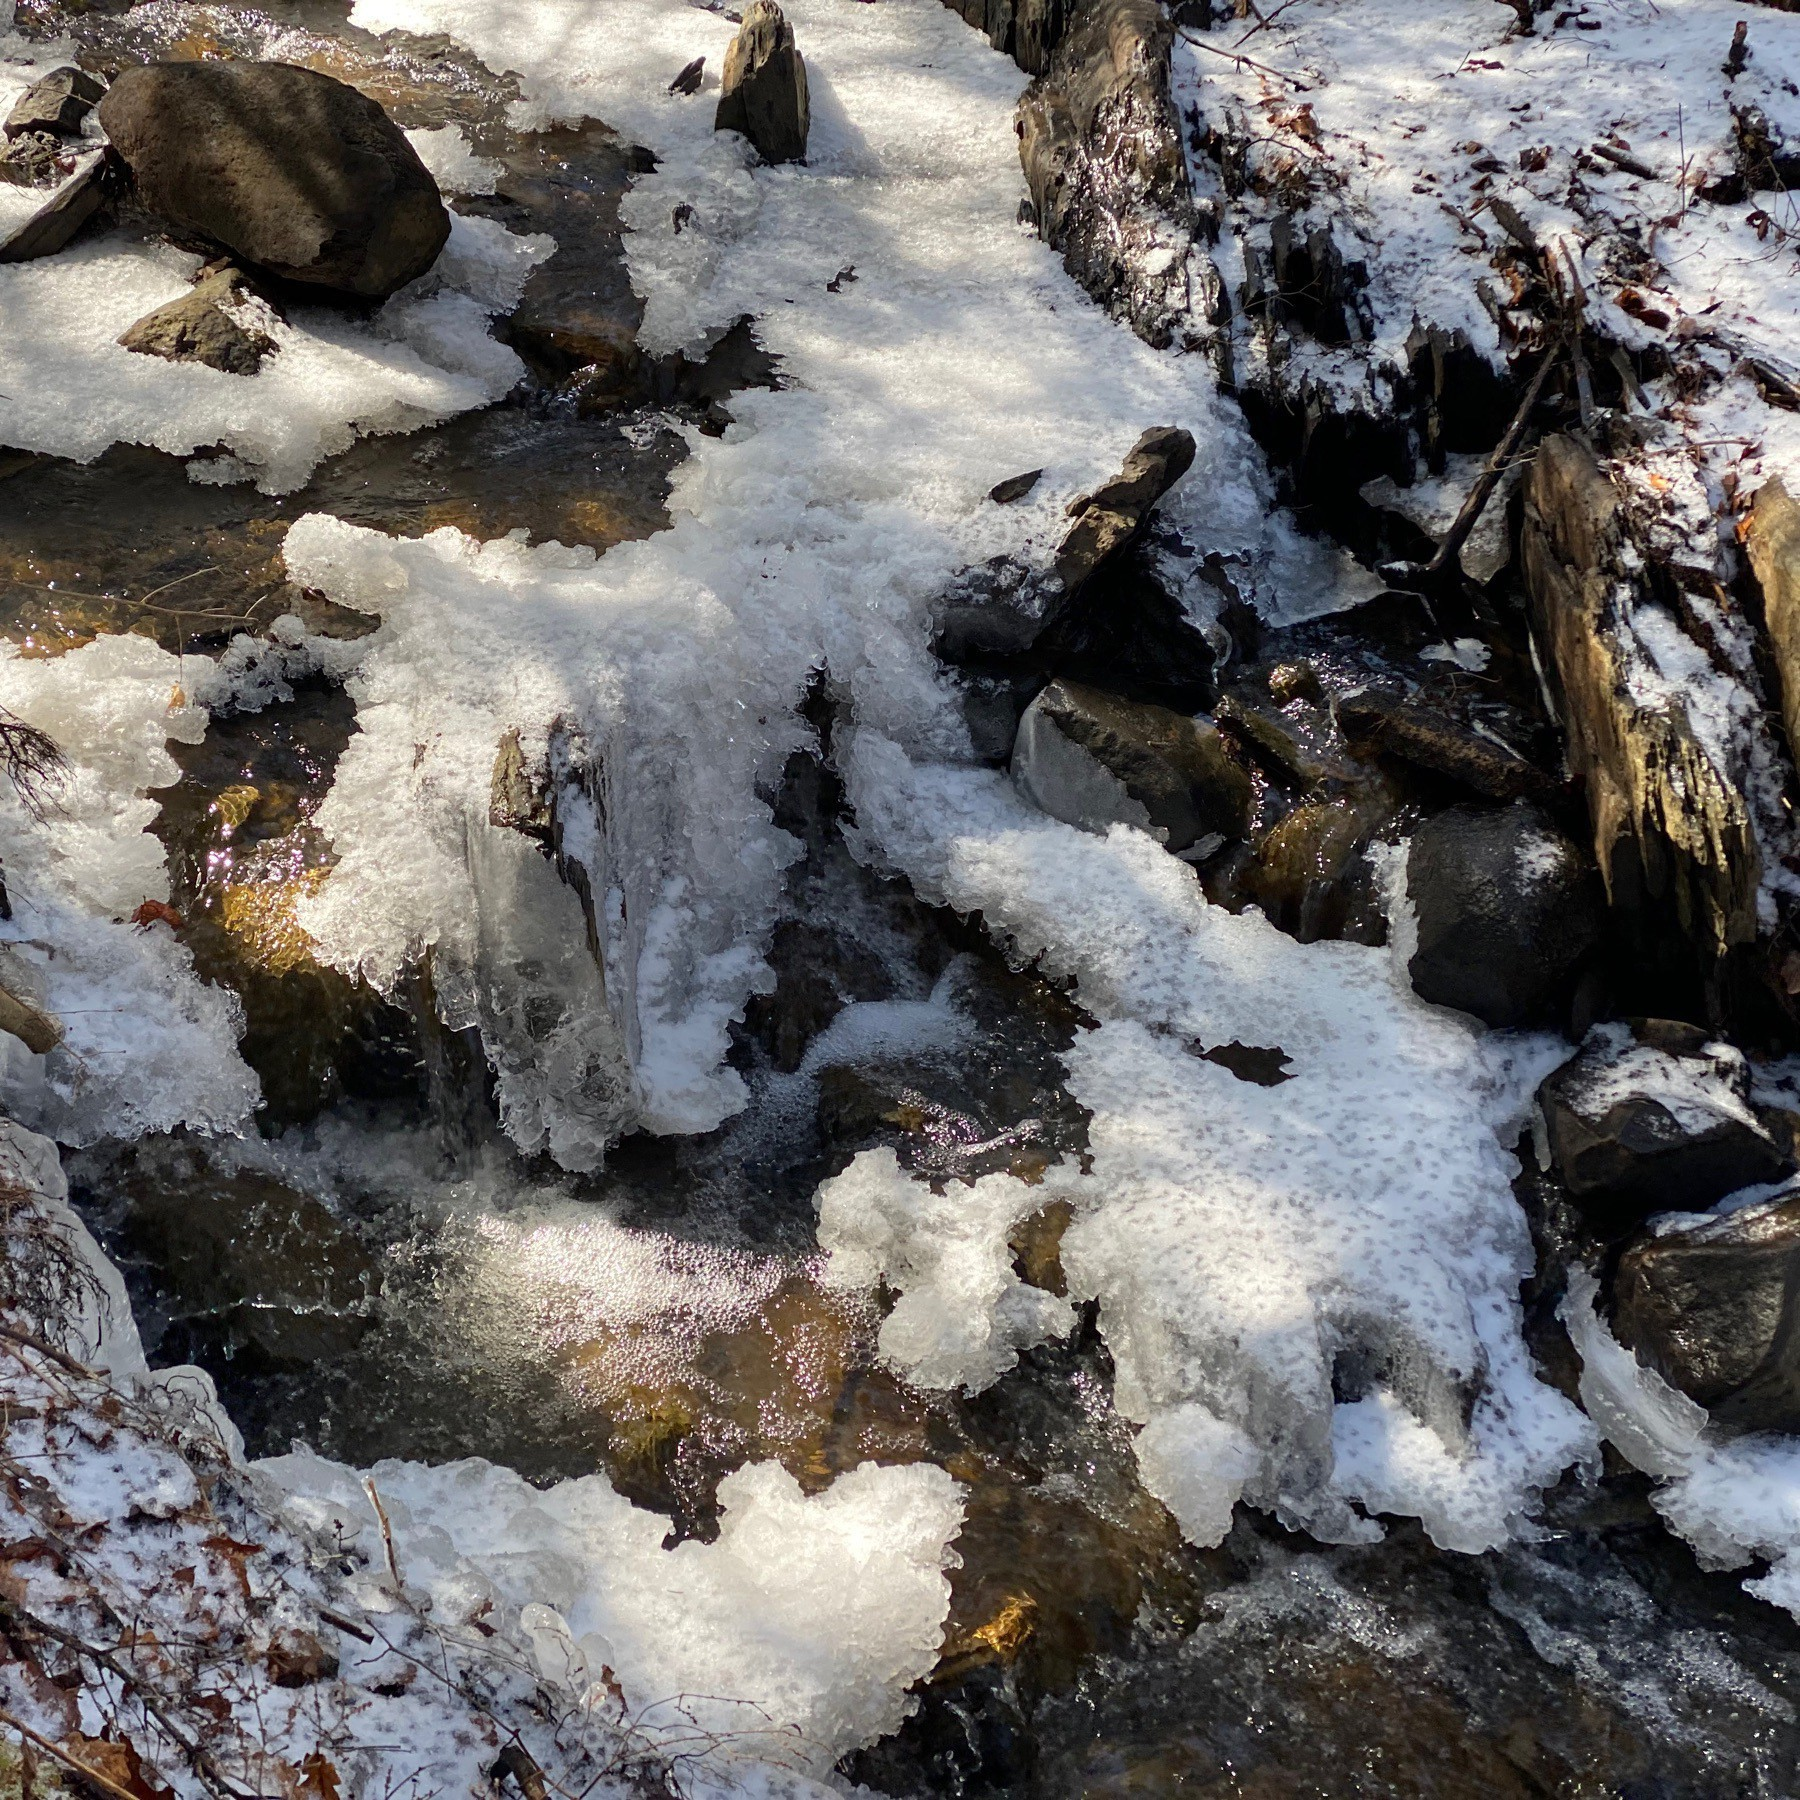 Frozen snow and flowing water in stream.